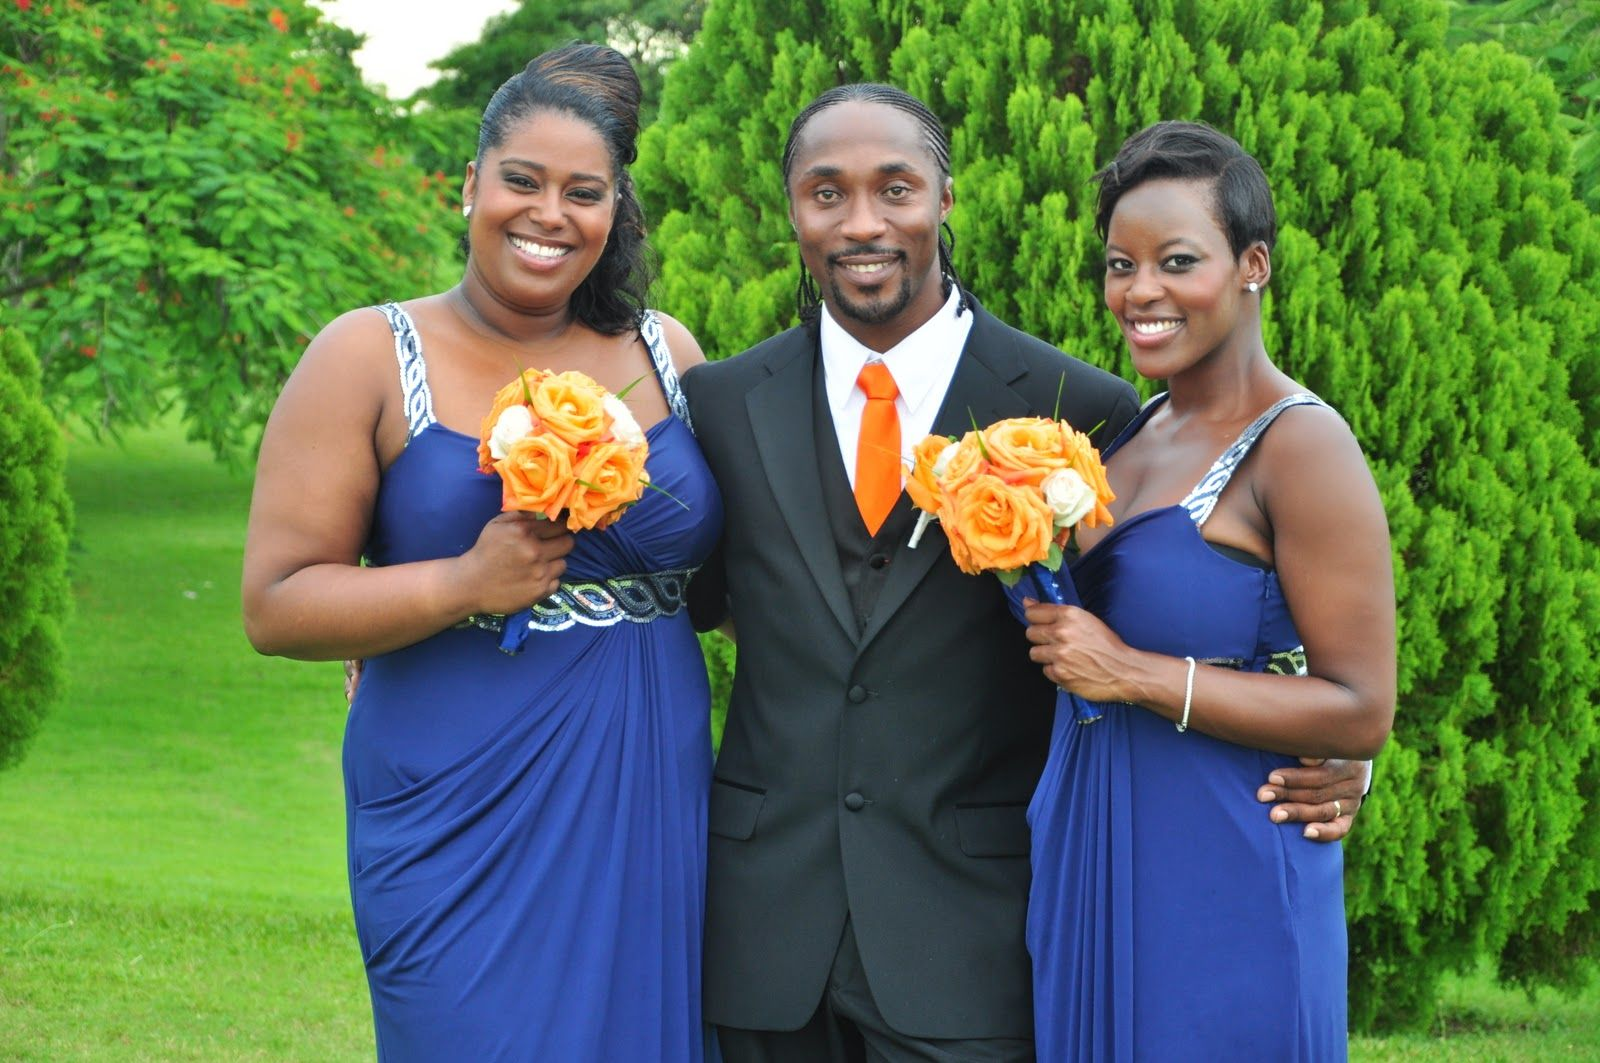 navy and orange bridesmaids with black tuxes | Navy Blue ...